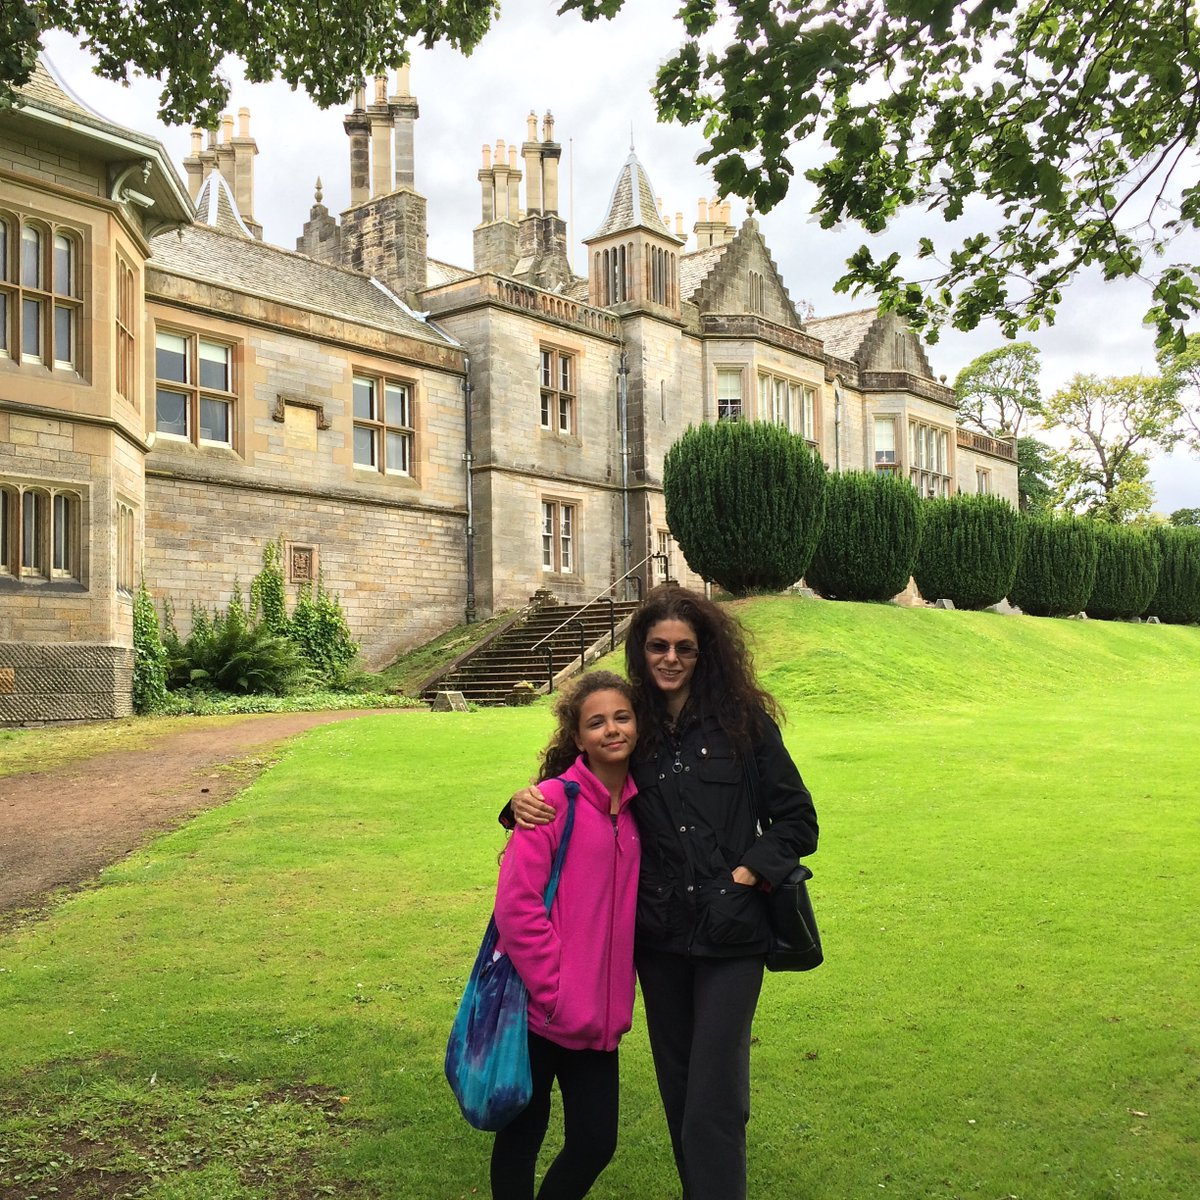 @zoeyfyi p.s. i LOVE #Edinburgh Visited in '16. with my daughter. Soooo gorgeous there. LOVE #LauristonCastle +++ (just a quick note: our .info site is only for USA but our .com site is international) #StaySafe ! xox